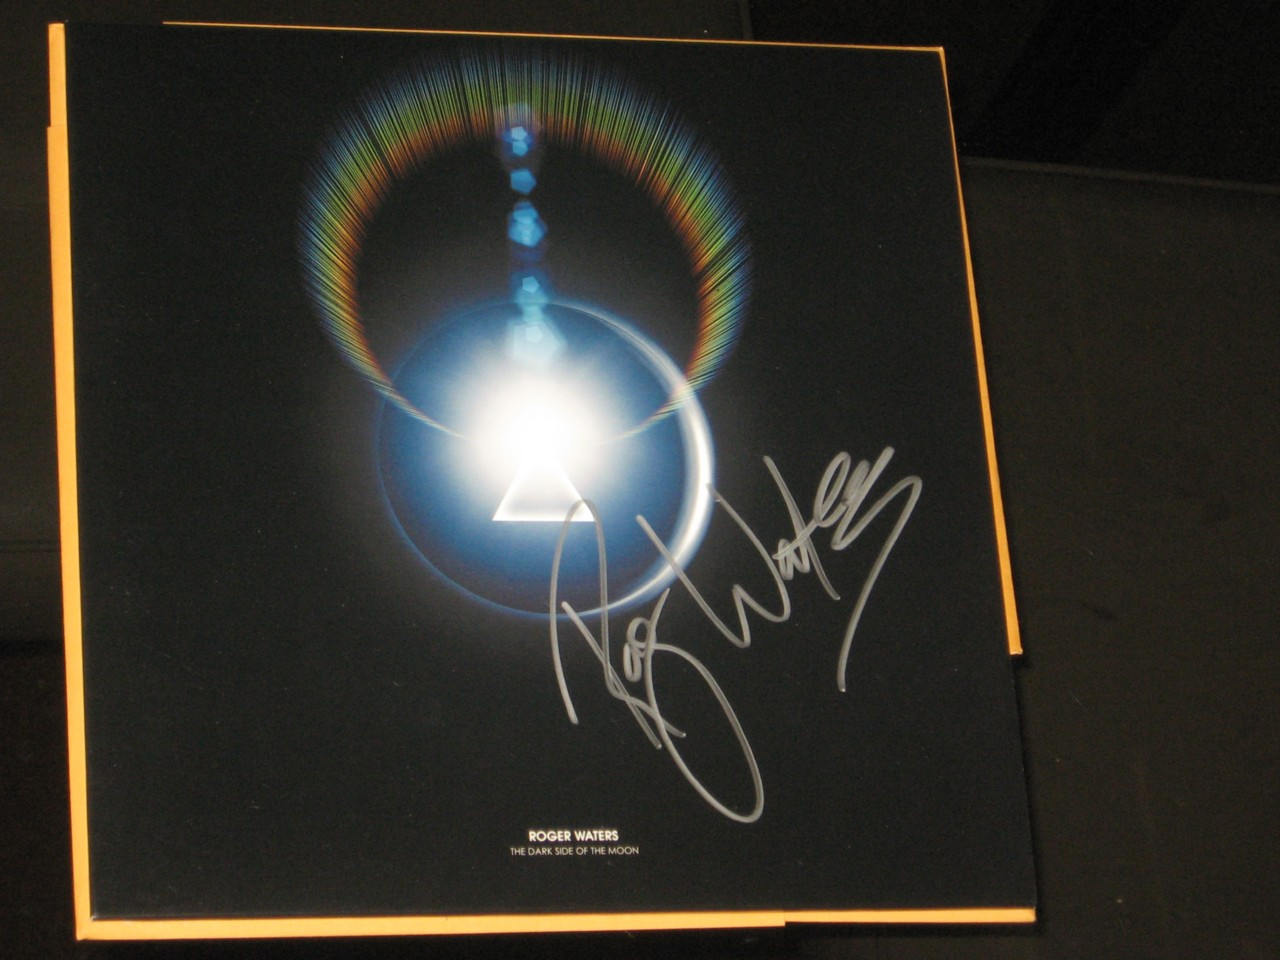 PINK-FLOYD-ROGER-WATERS-SIGNED-TOUR-BOOK-2007-DARK-SIDE-OF-THE-MOON